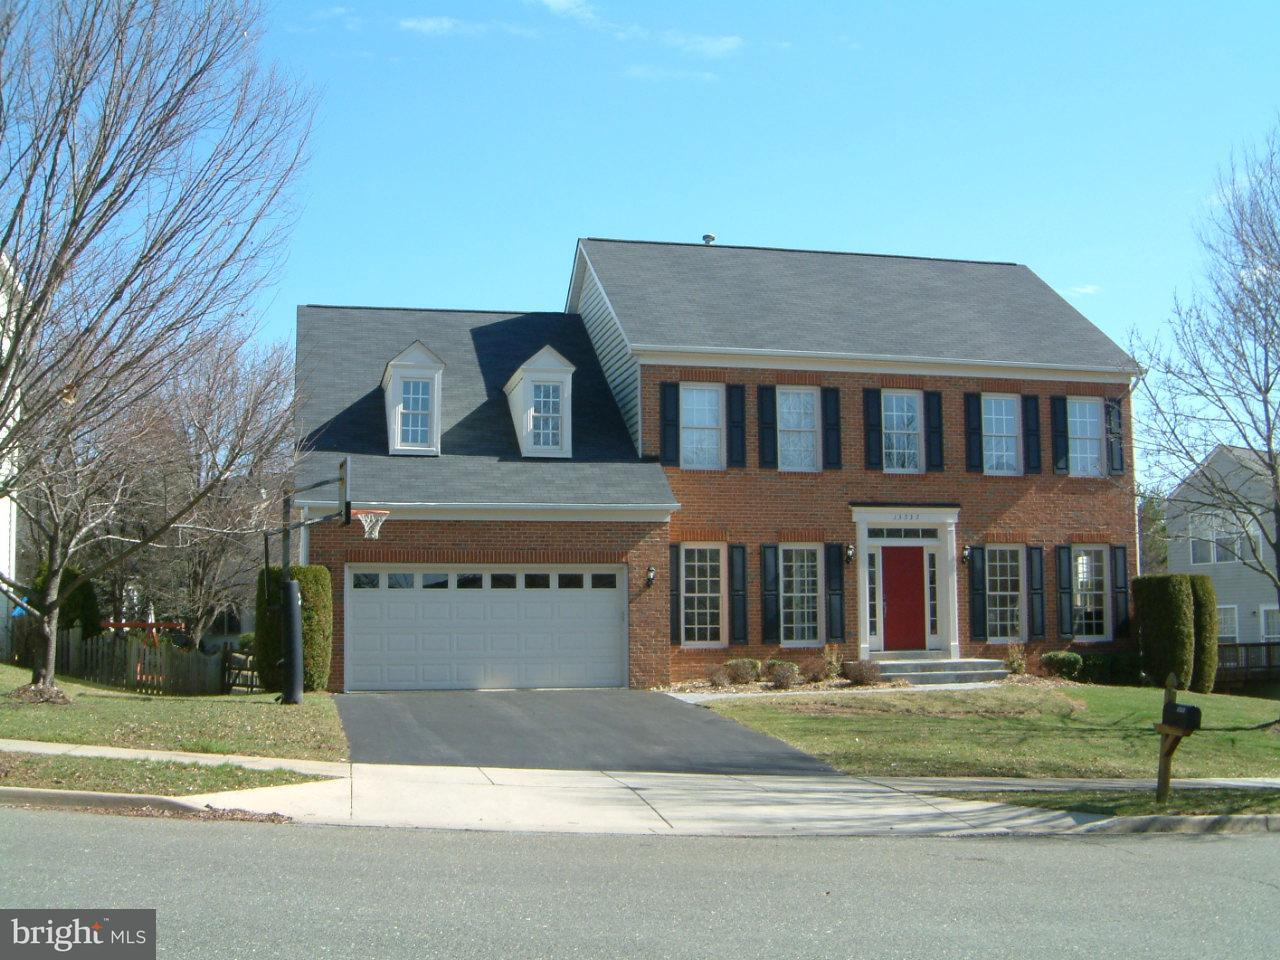 Single Family Home for Sale at 13535 Sanderling Place 13535 Sanderling Place Germantown, Maryland 20874 United States